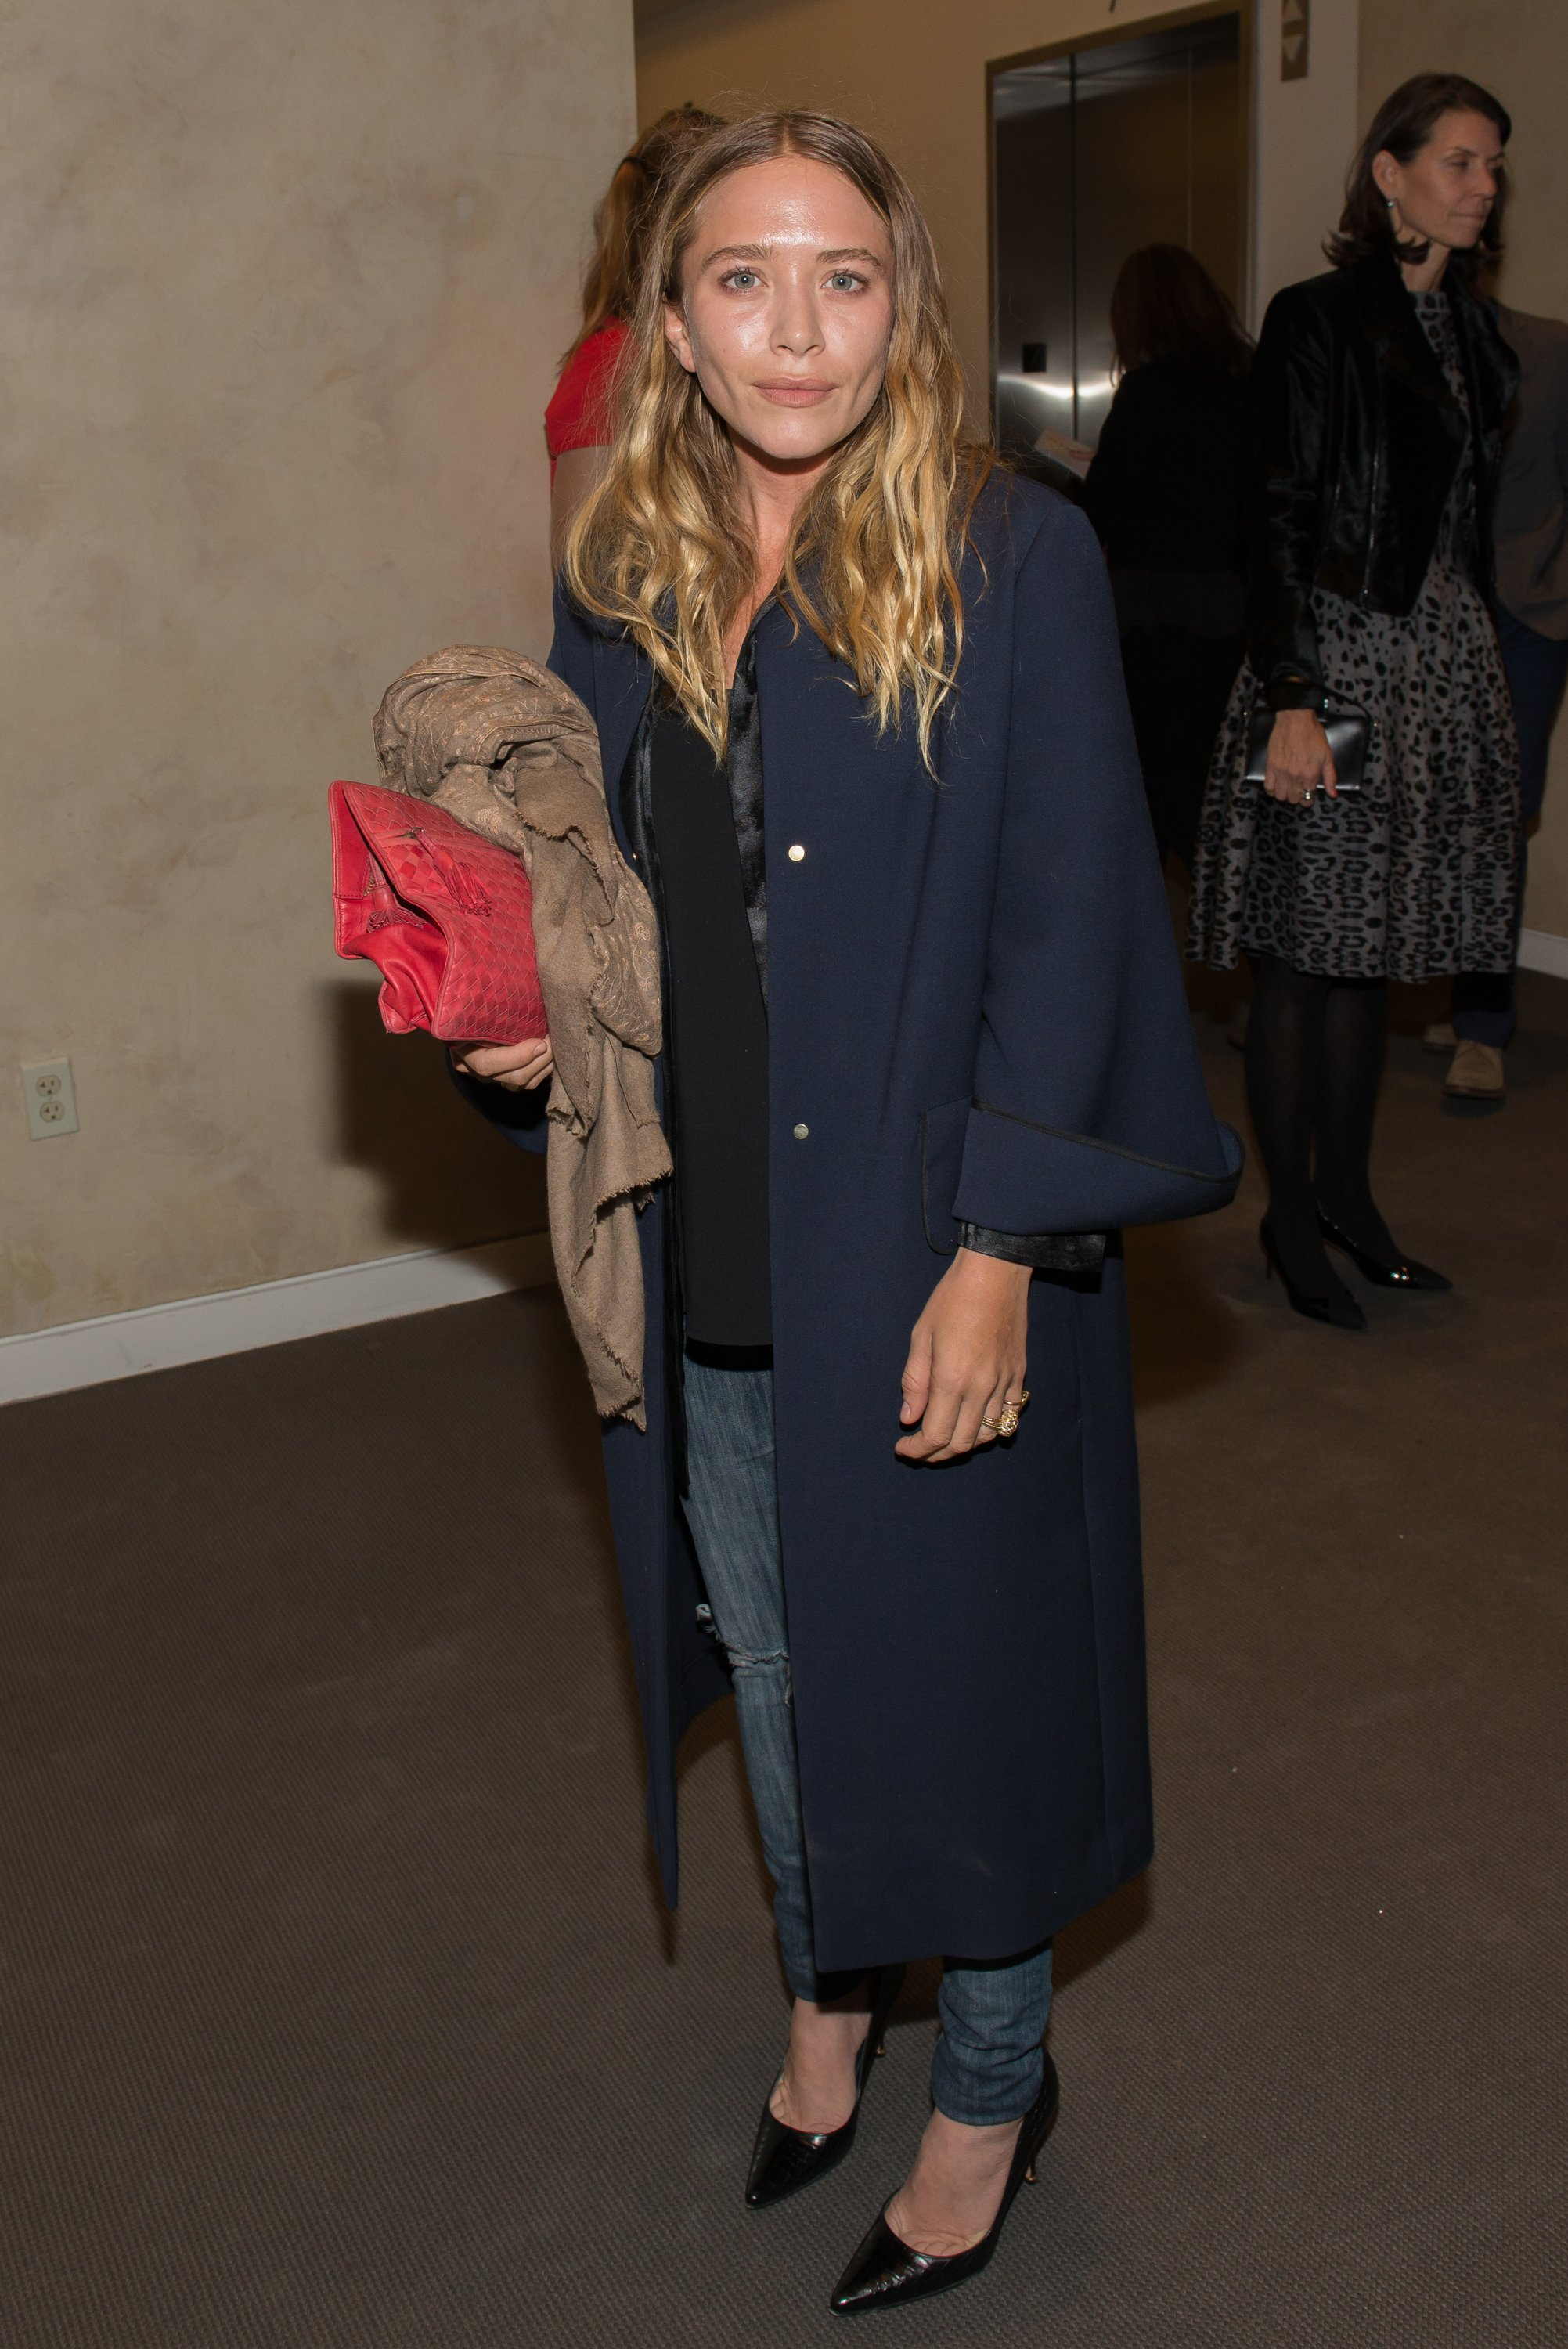 Mary-Kate Olsen attends the Take Home A Nude Event at Sotheby's on October 9, 2014, in New York City. | Source: Getty Images.